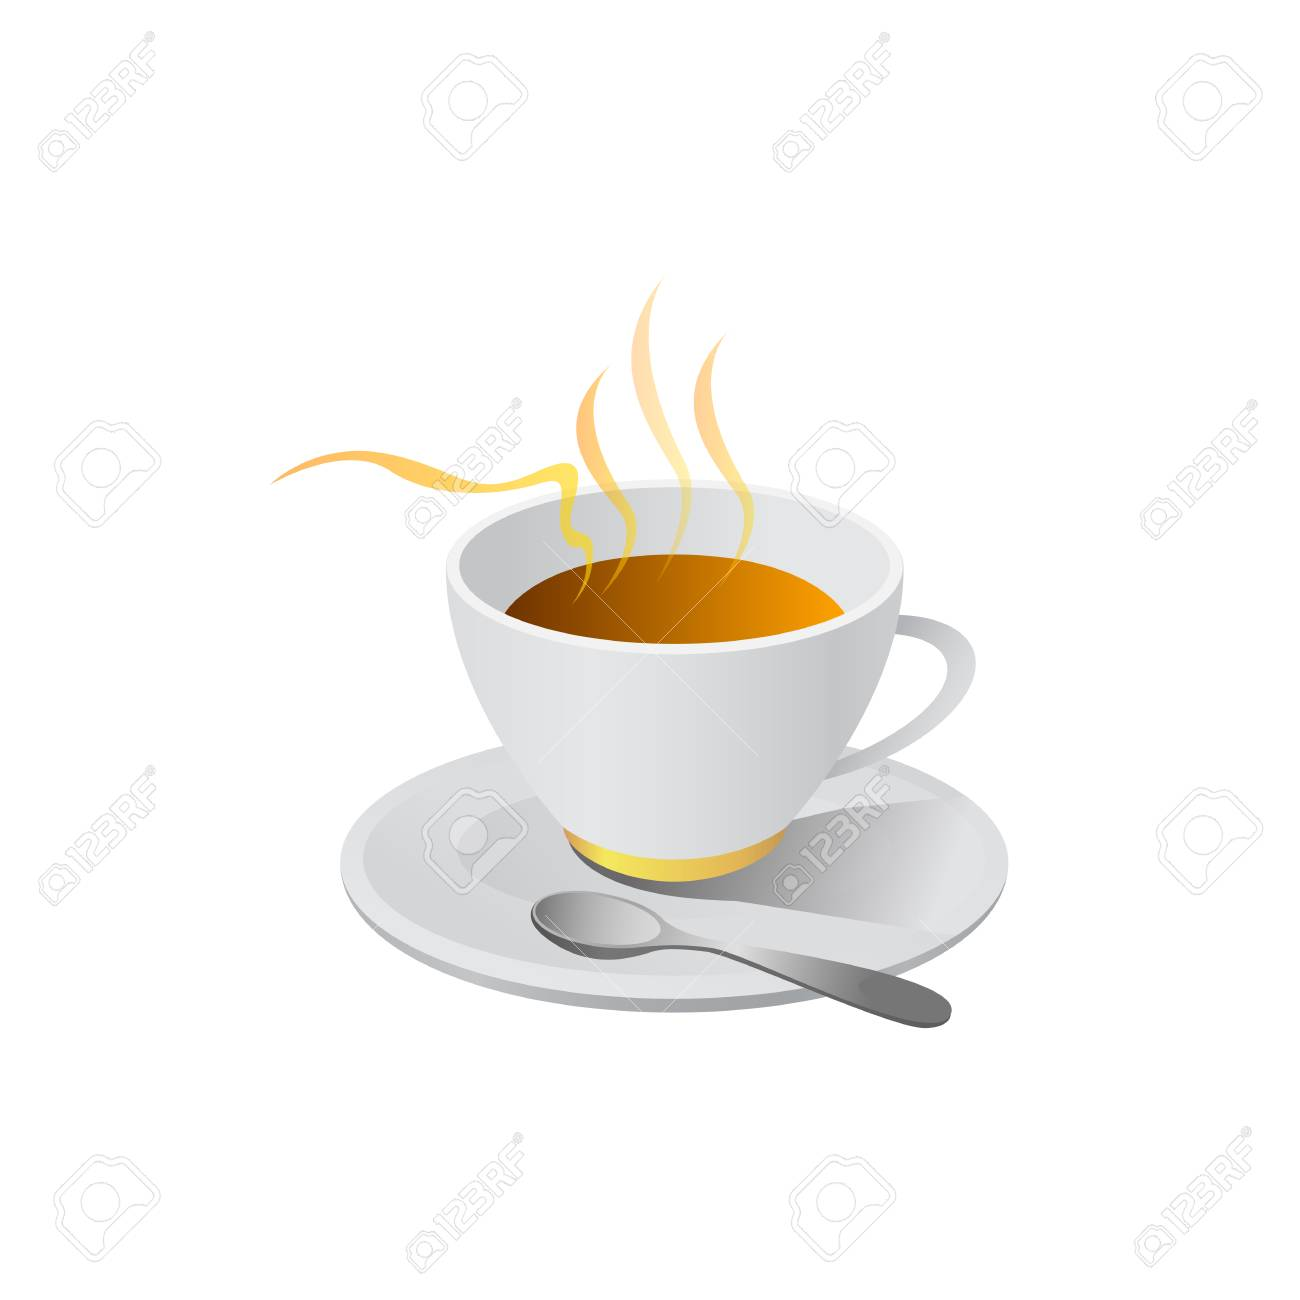 hot coffe illustration vector isolated on white background - 82887751